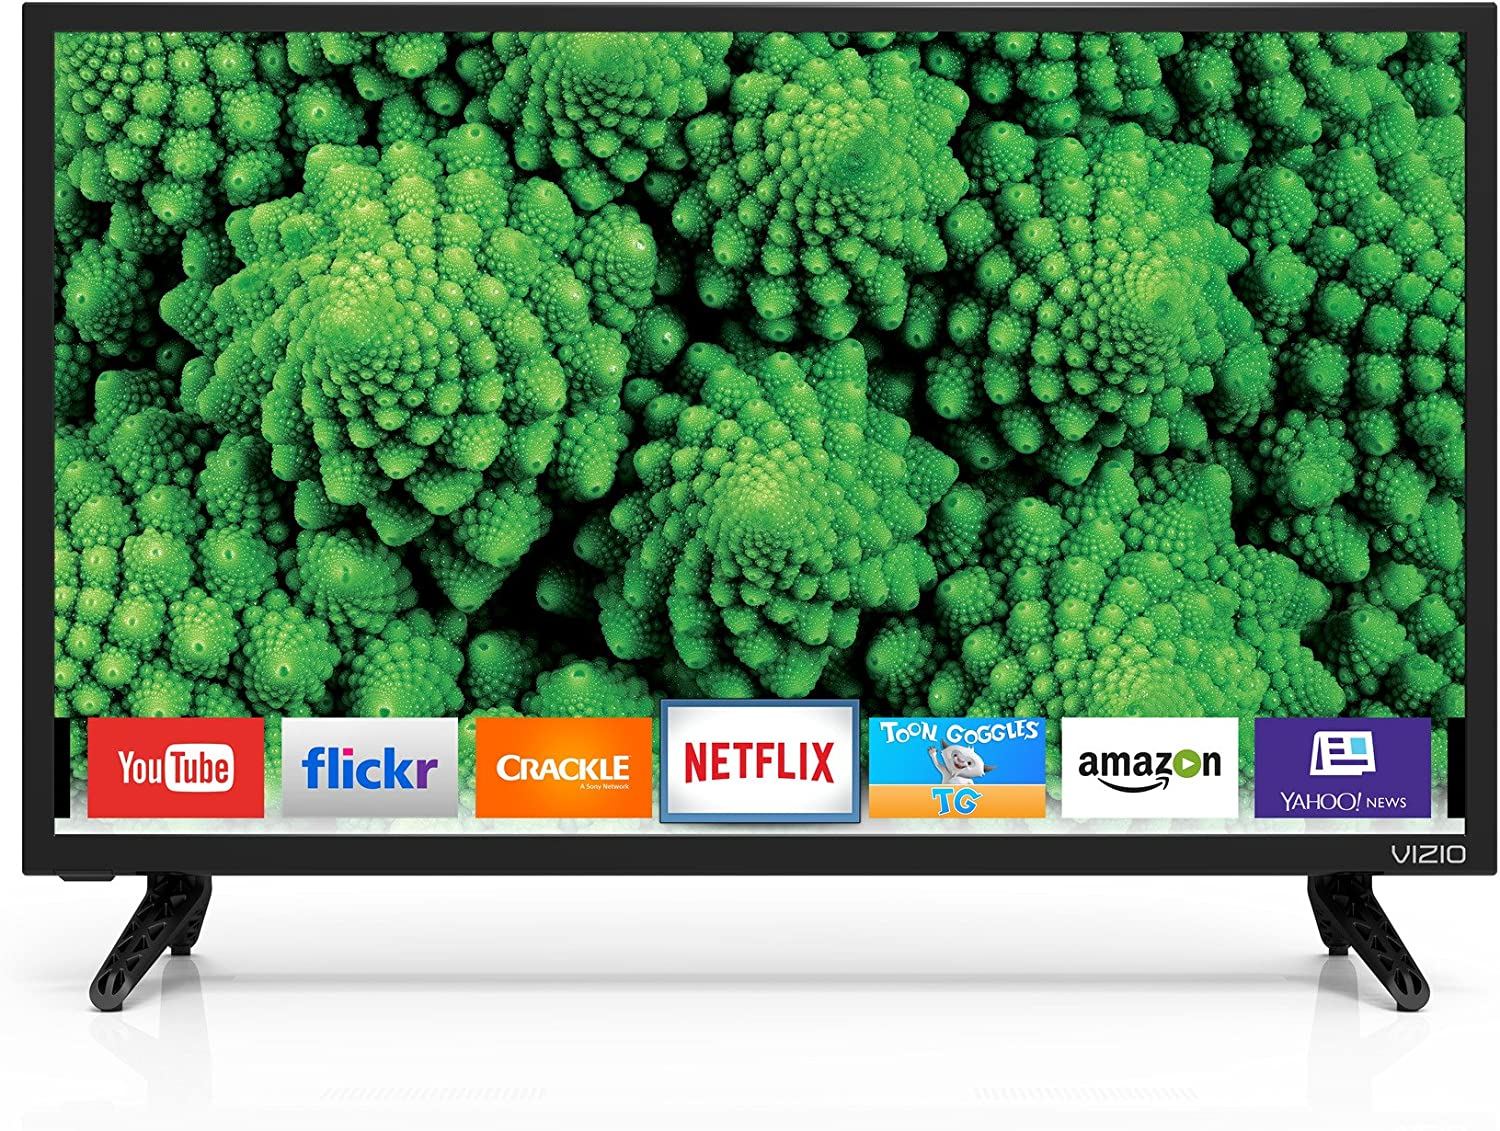 Vizio 24IN Price reduction D-Series LED Smart DIAG TV D24H-E1 New Orleans Mall 23.54IN